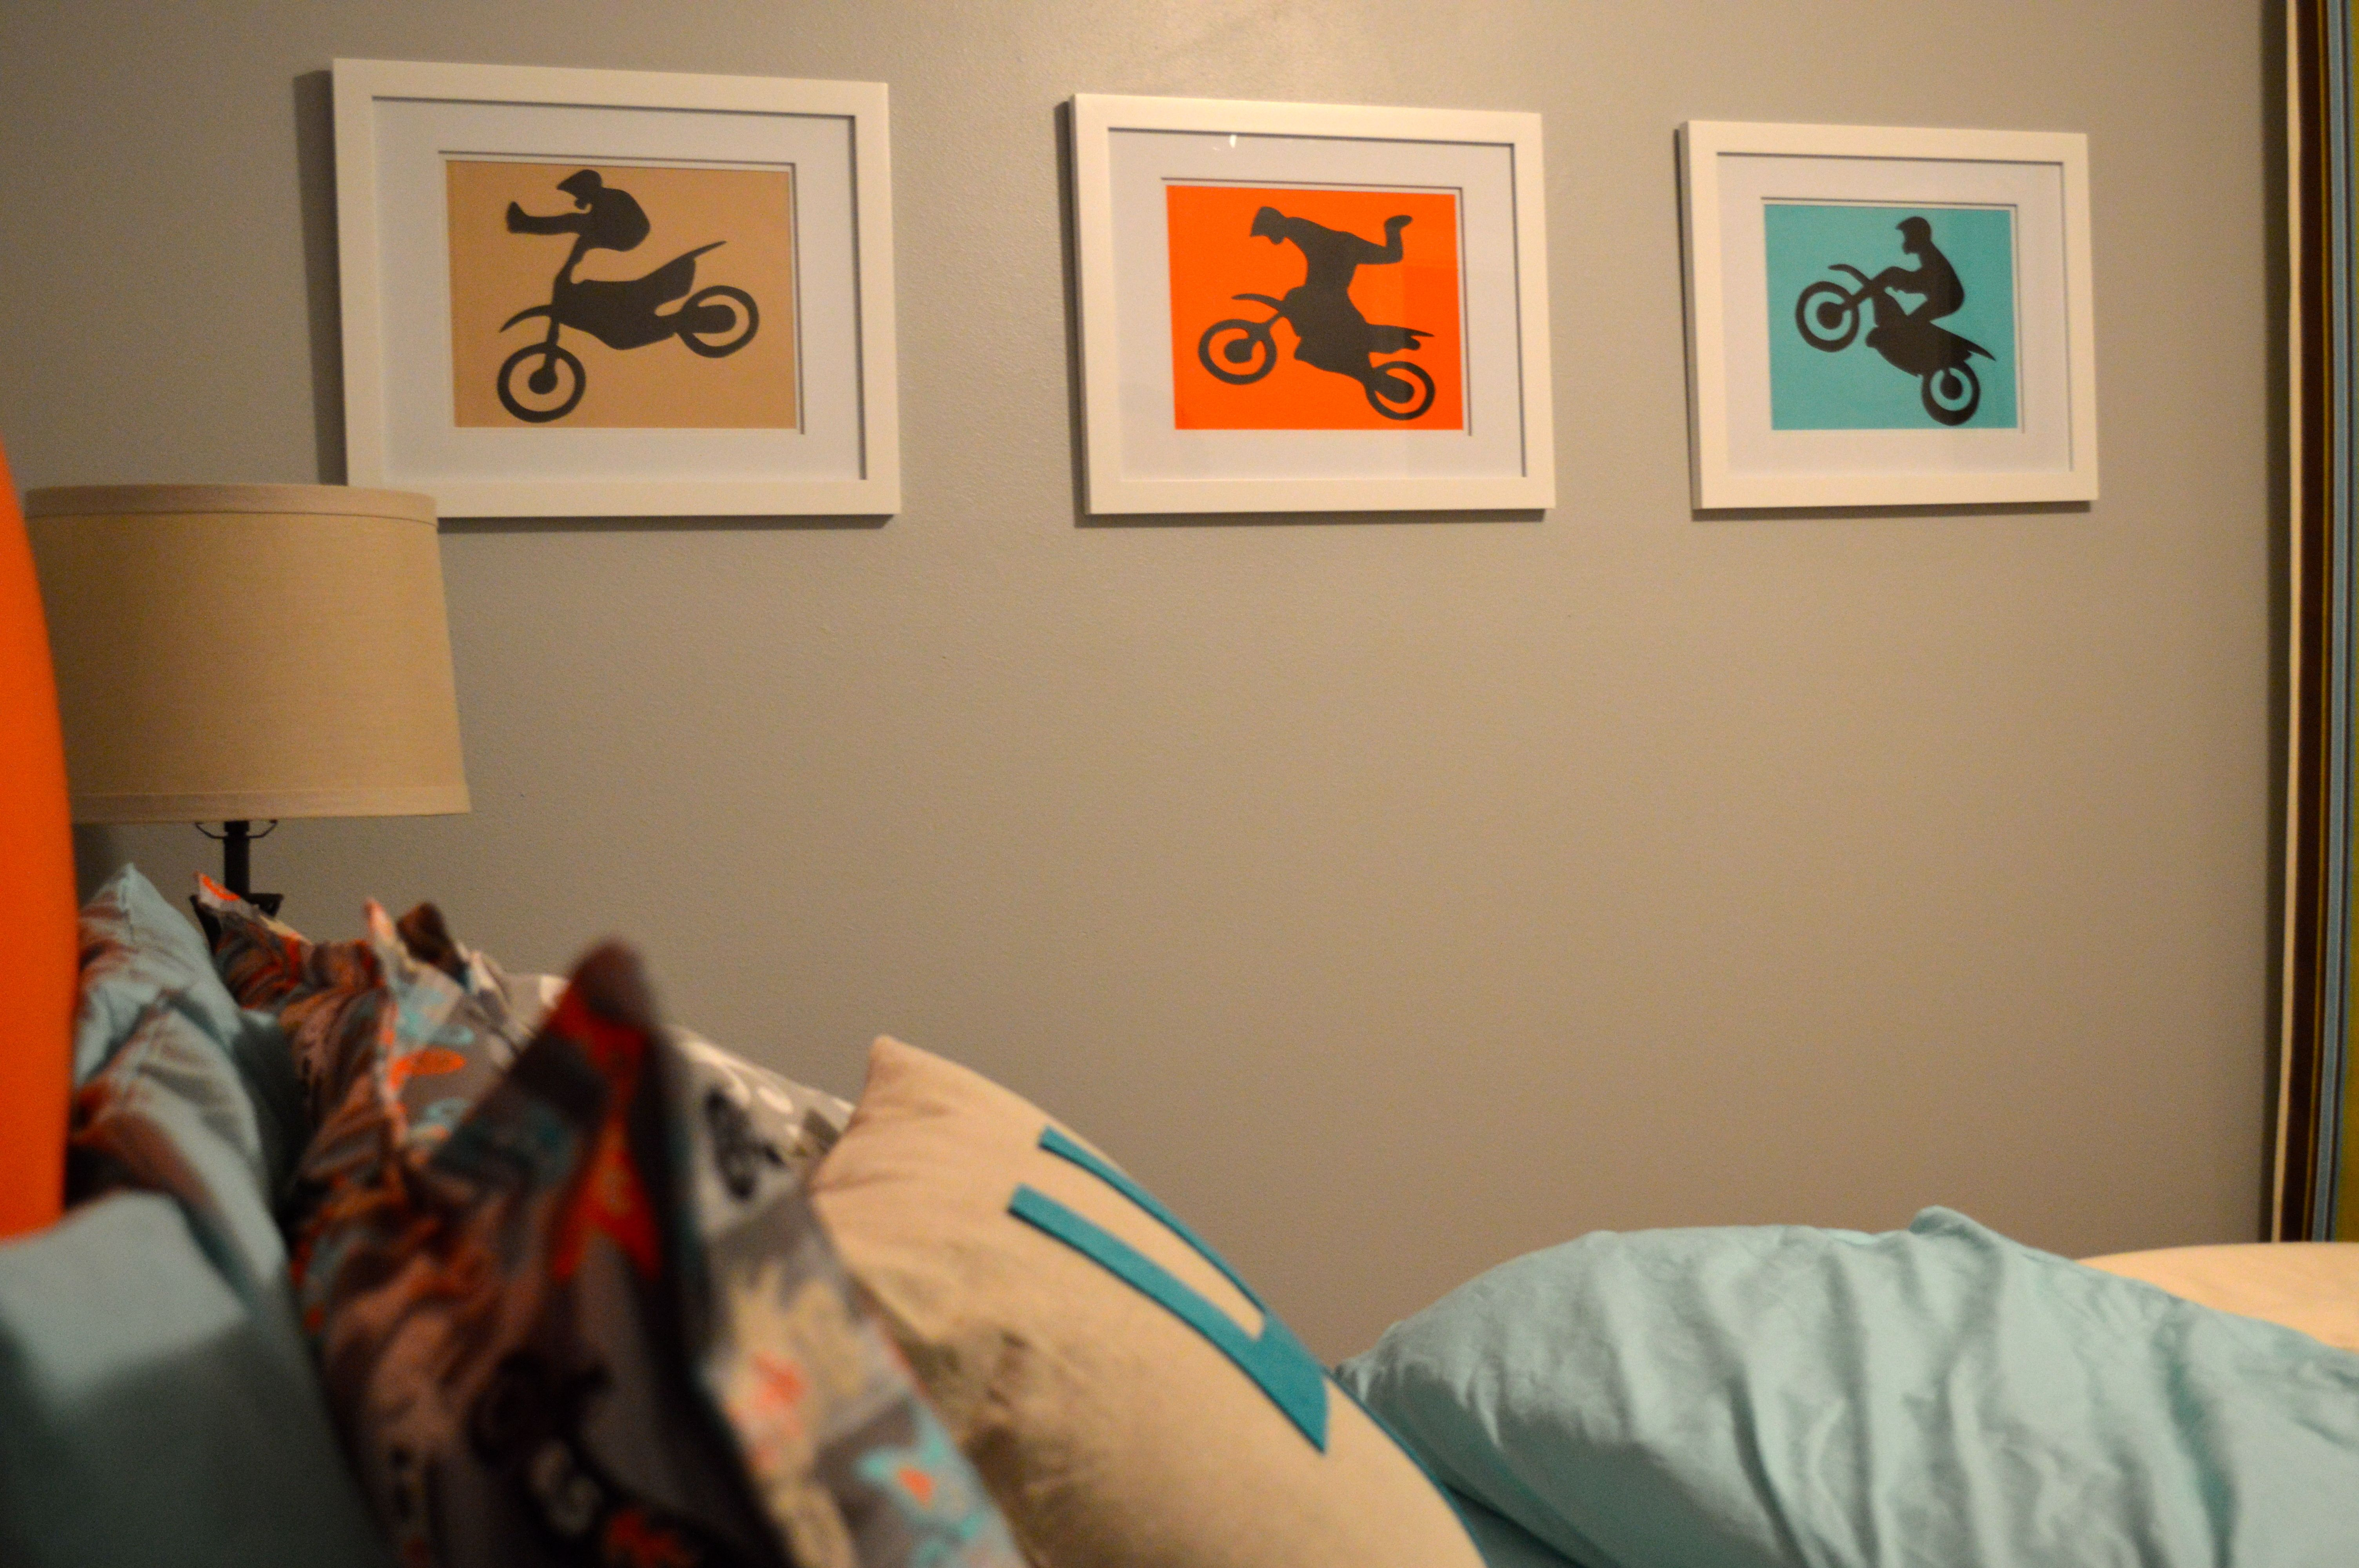 Dirt bike bedroom taylor 39 s bedroom pinterest for Dirt bike bedroom ideas